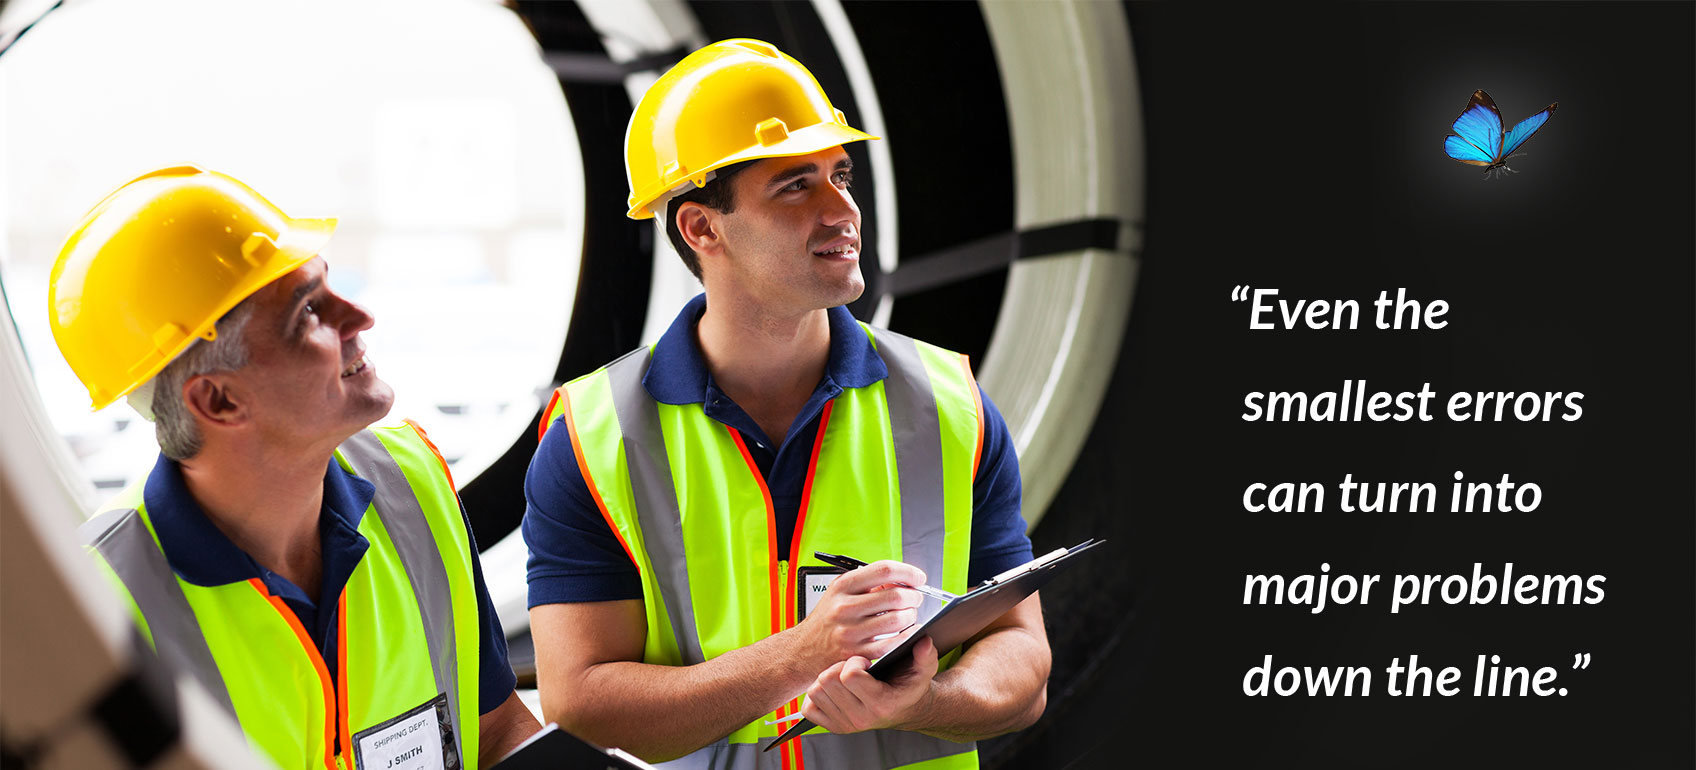 The Benefits of Spending Quality Time with Quality Inspection Software